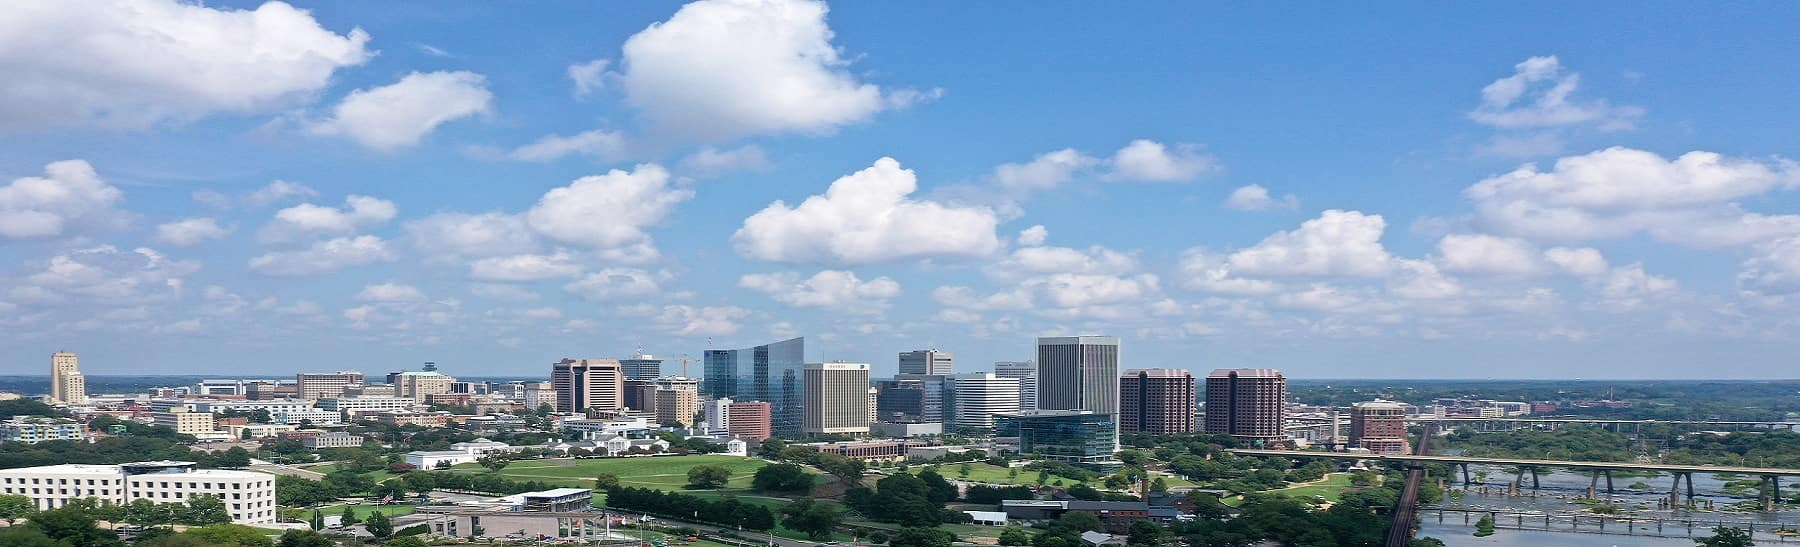 Beautiful shot of Richmond, Virginia skyline with a cloudy blue sky in the background